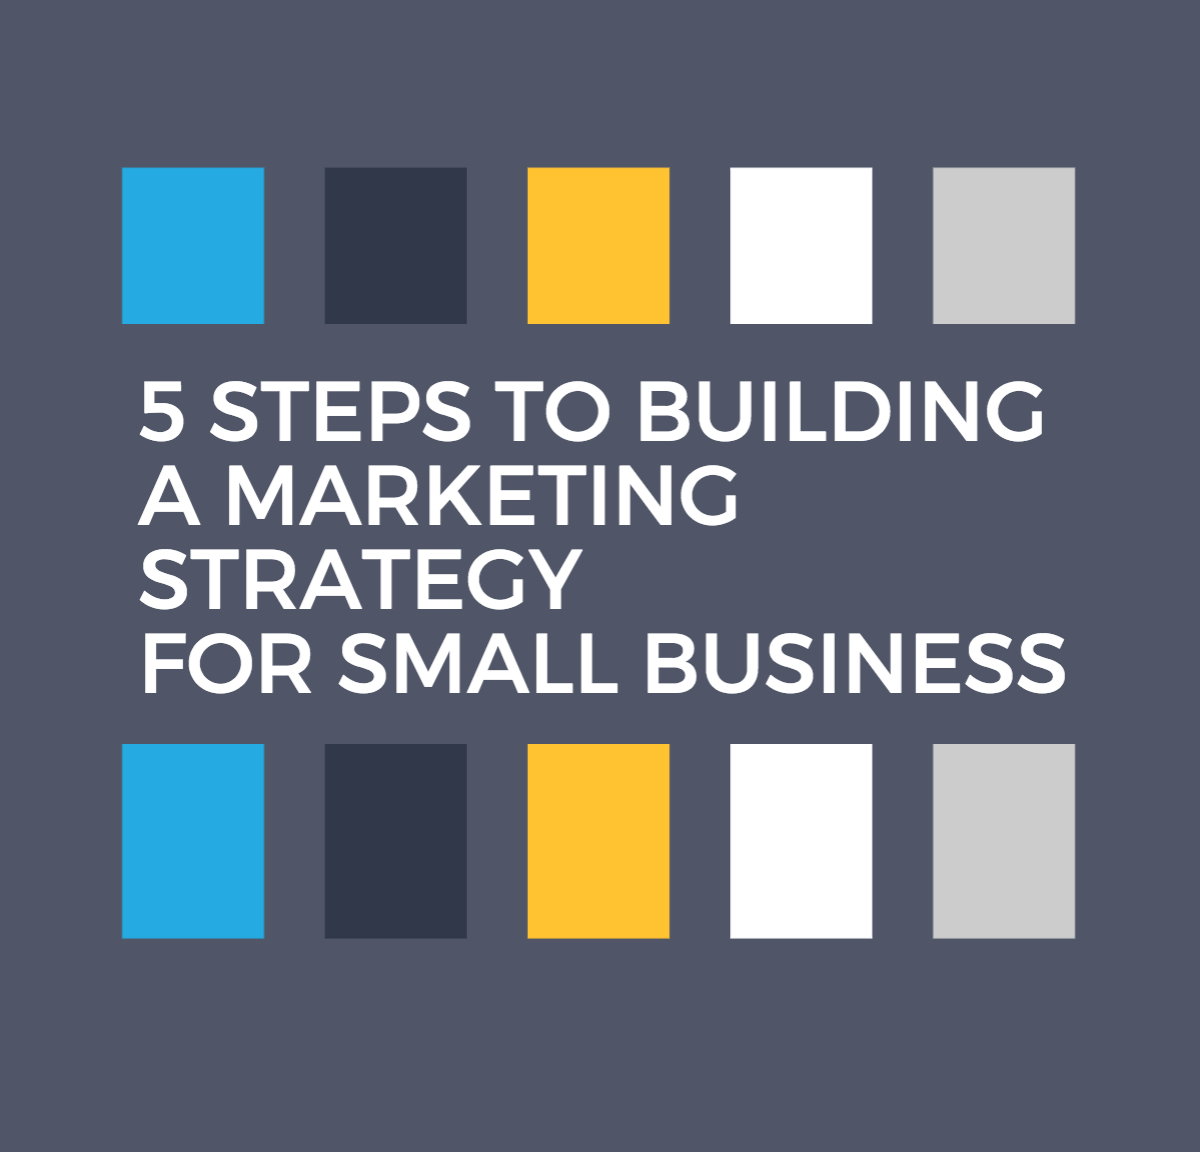 marketing plan and the strategies for small business enterprises But, compared to enterprise clients, smaller companies have unique needs that   we've compiled a list of five lessons for marketing to small-medium business   these tips can help you plan your strategy whether you're a.